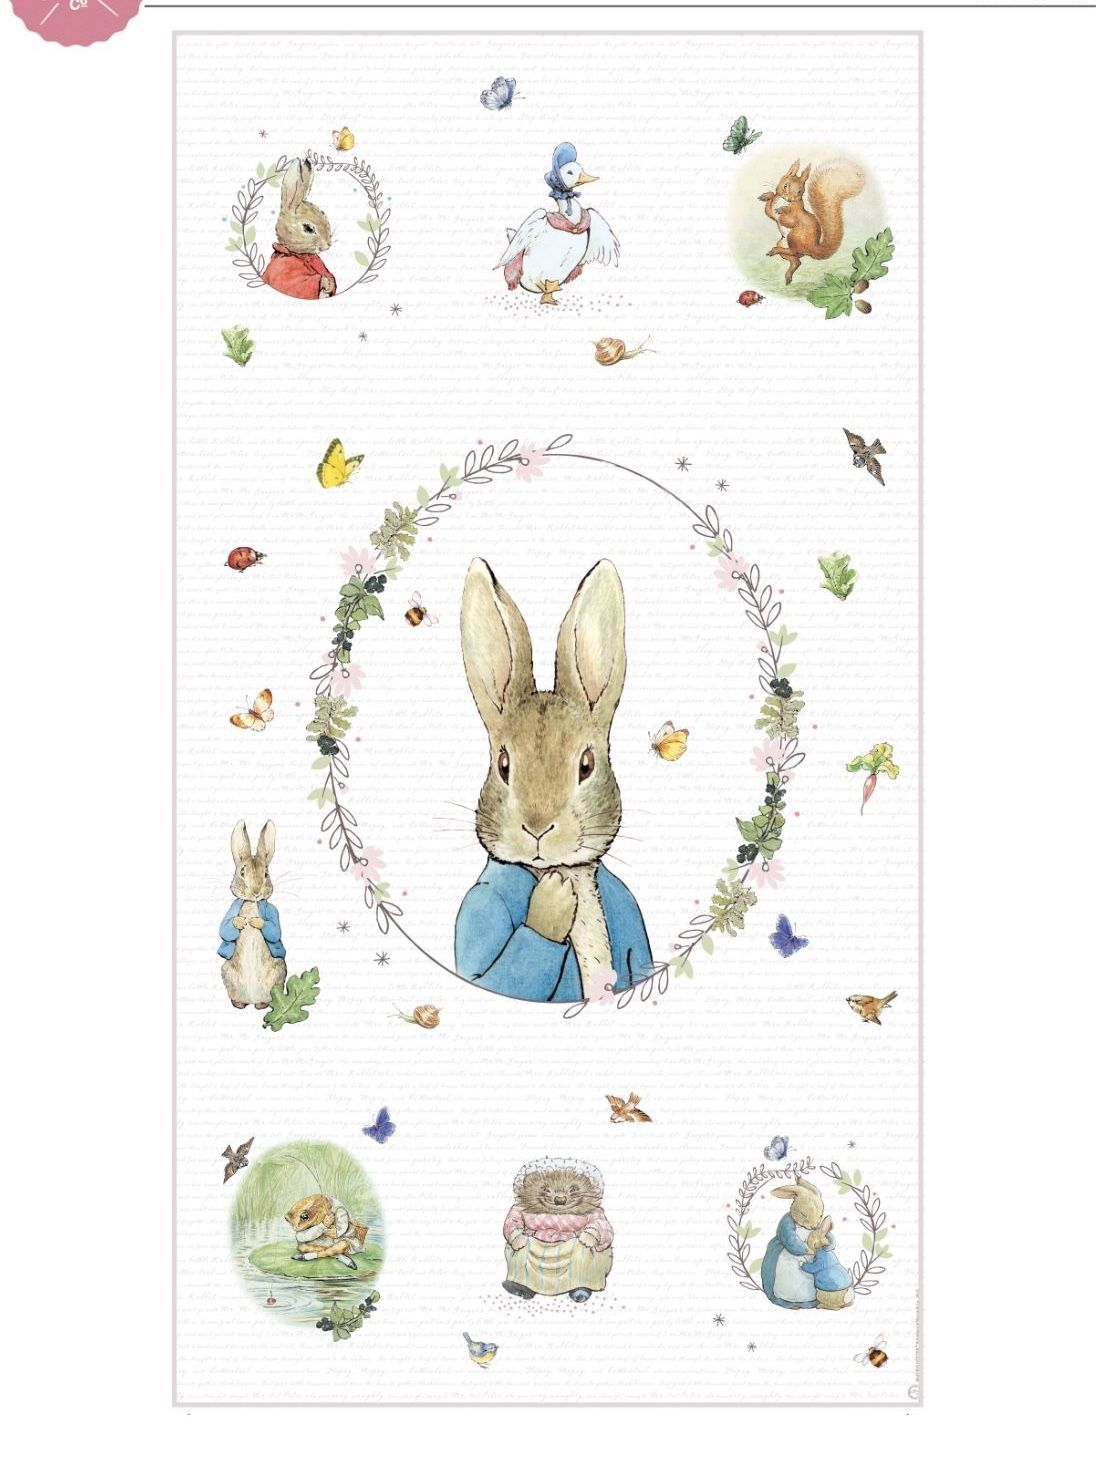 Peter Rabbit nursery decor,baby shower,Easter baby gift. quilt Mrs Bunny,Flopsy,Mopsy and Cottontail Beatrix Potter blanket